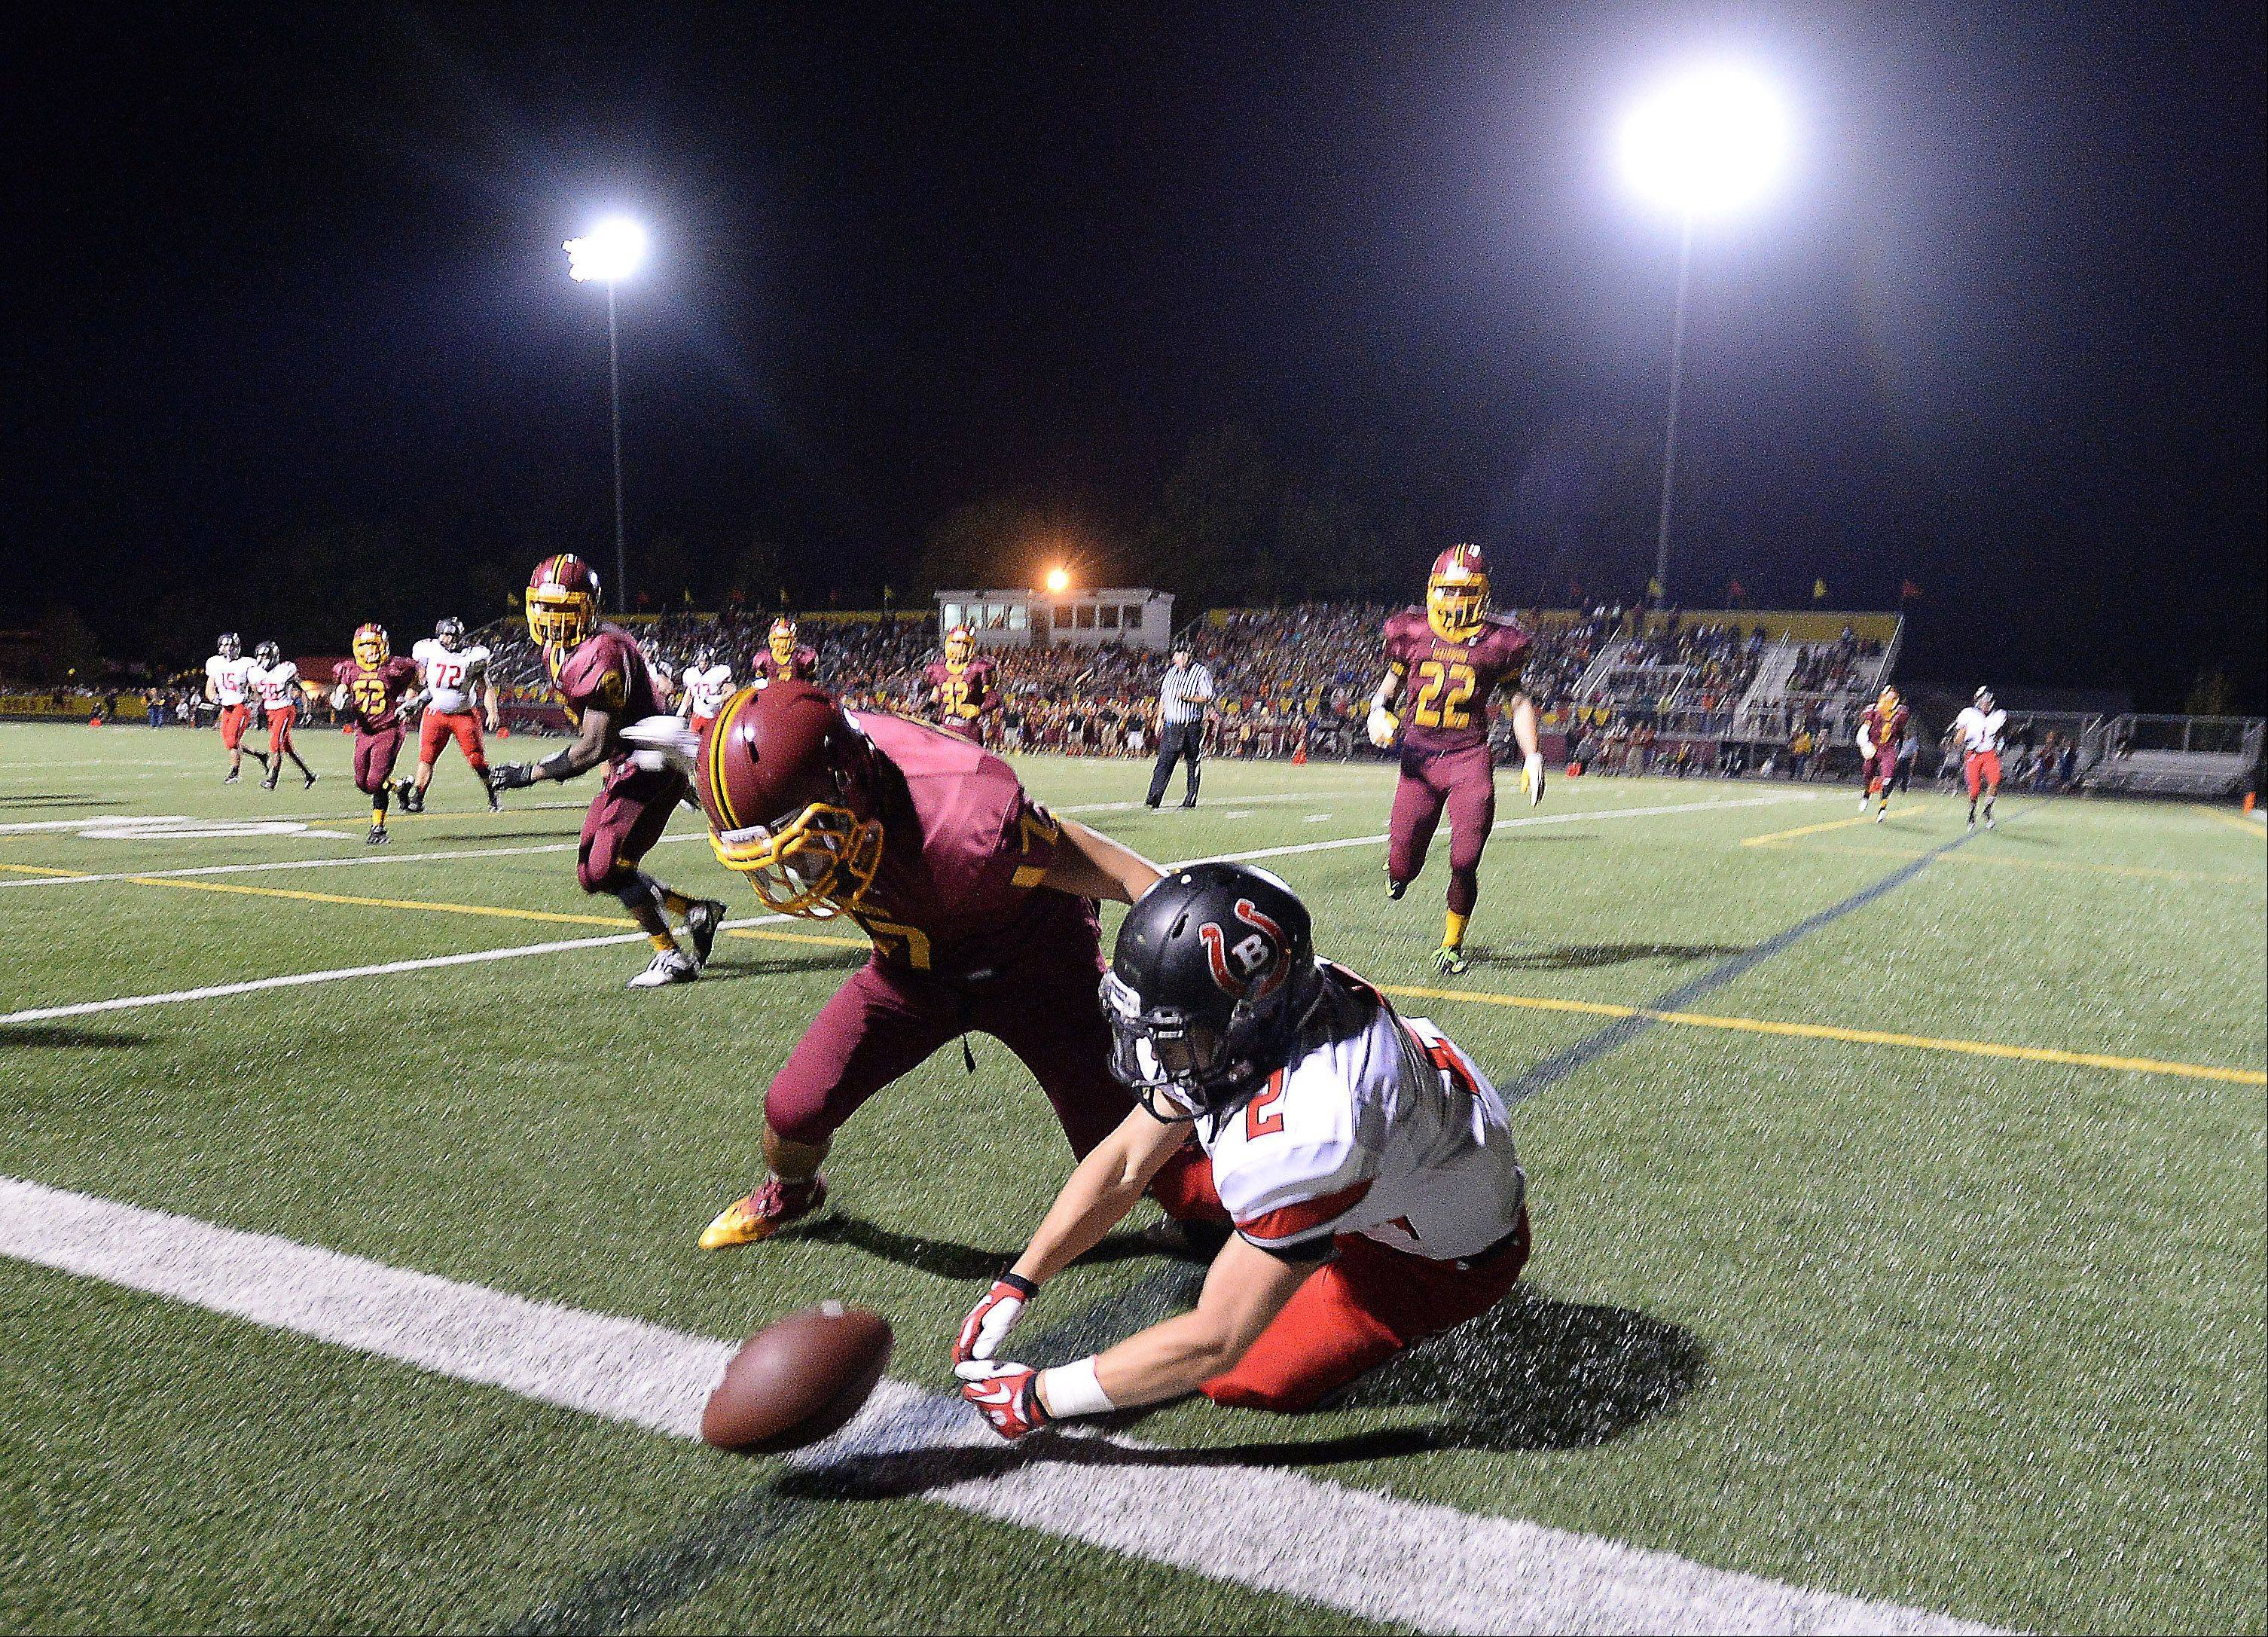 Schaumburg's Chris Henson prevents Barrington's Matt Moran from picking up a first down near the goal line late in the second quarter at Schaumburg.